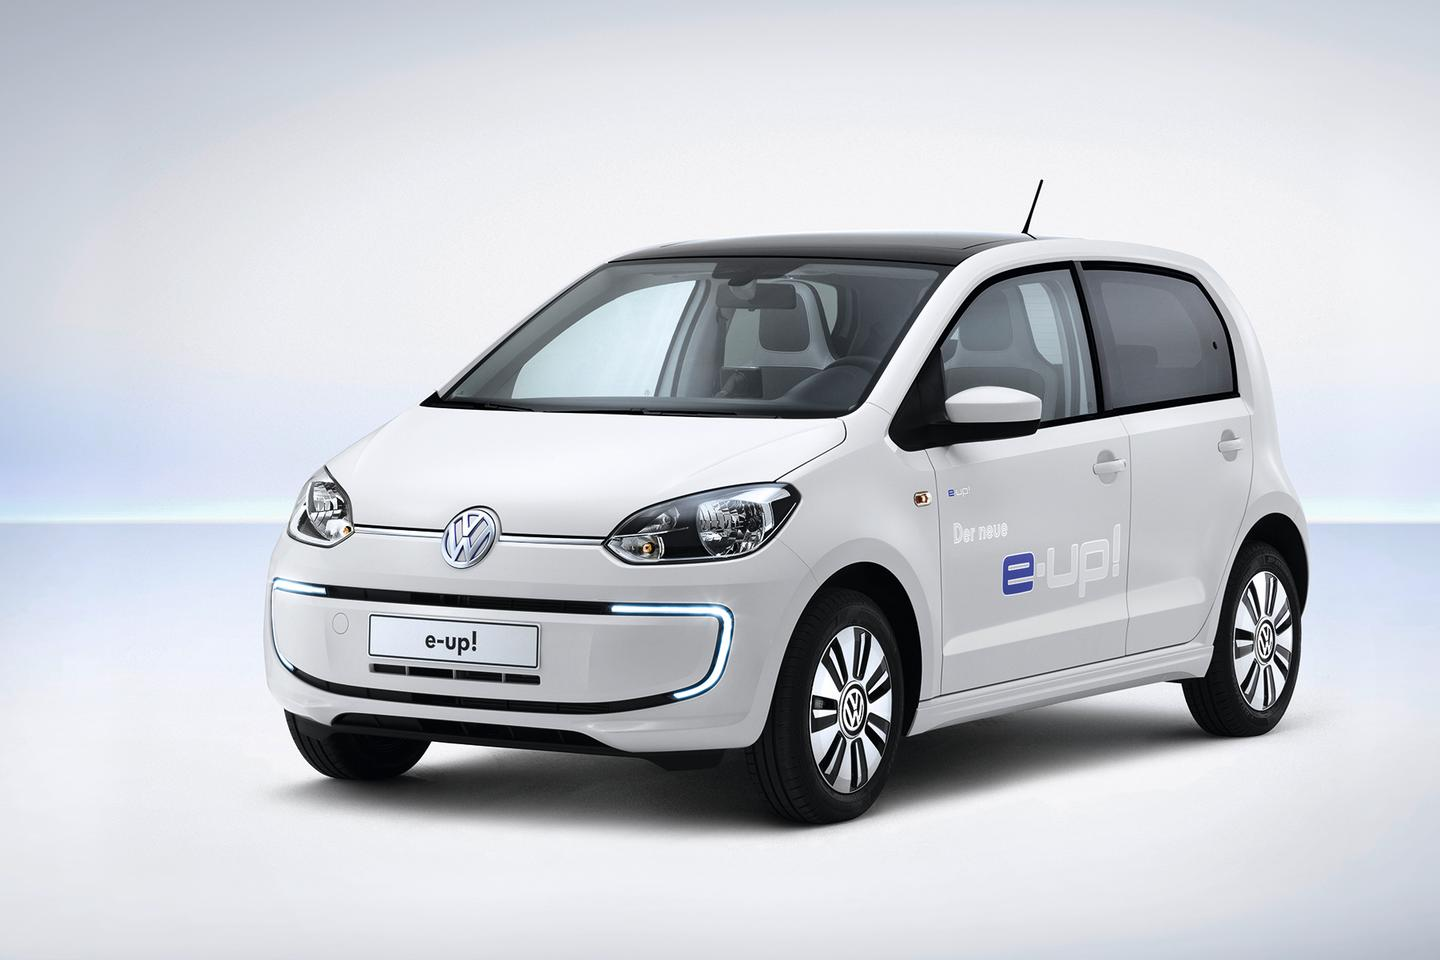 Volkswagen showed the e-up at its media conference this week